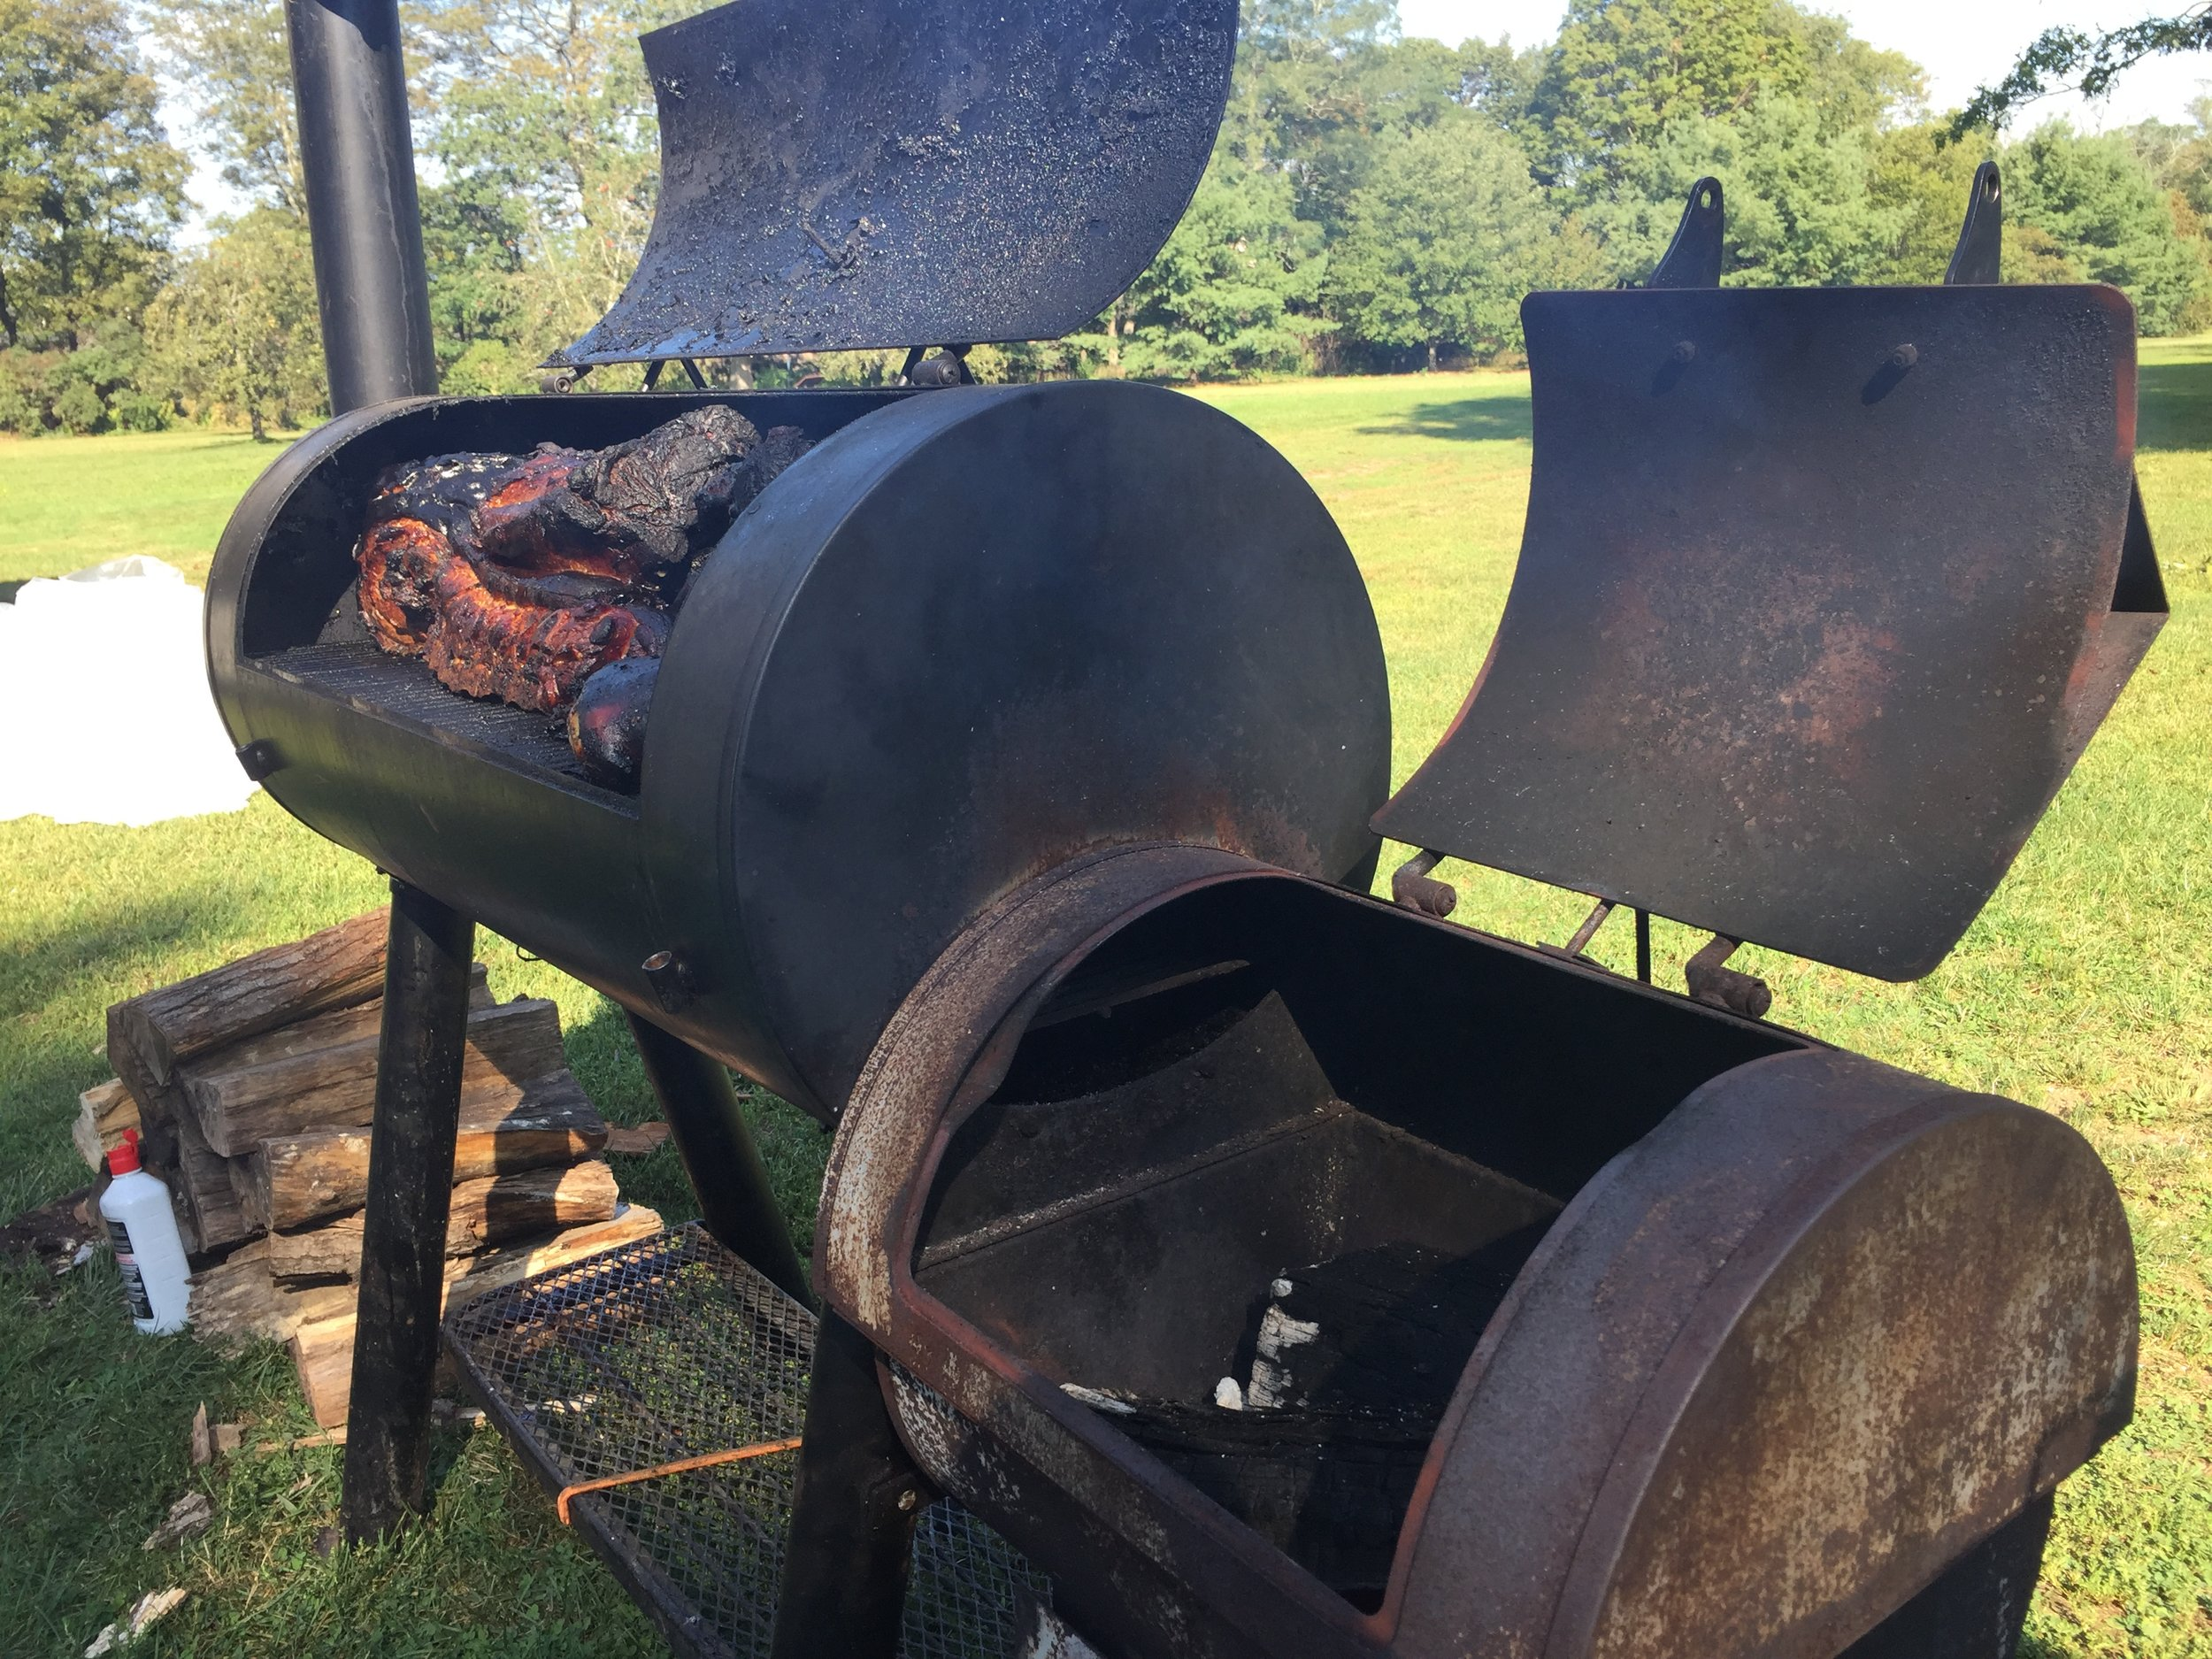 LECHON PIG ROAST - Our local organic pig roast!Served With:Mexican Street CornRoasted Sweet PotatoSpanish RiceSmoked SalsaTortillas$29 Per Person